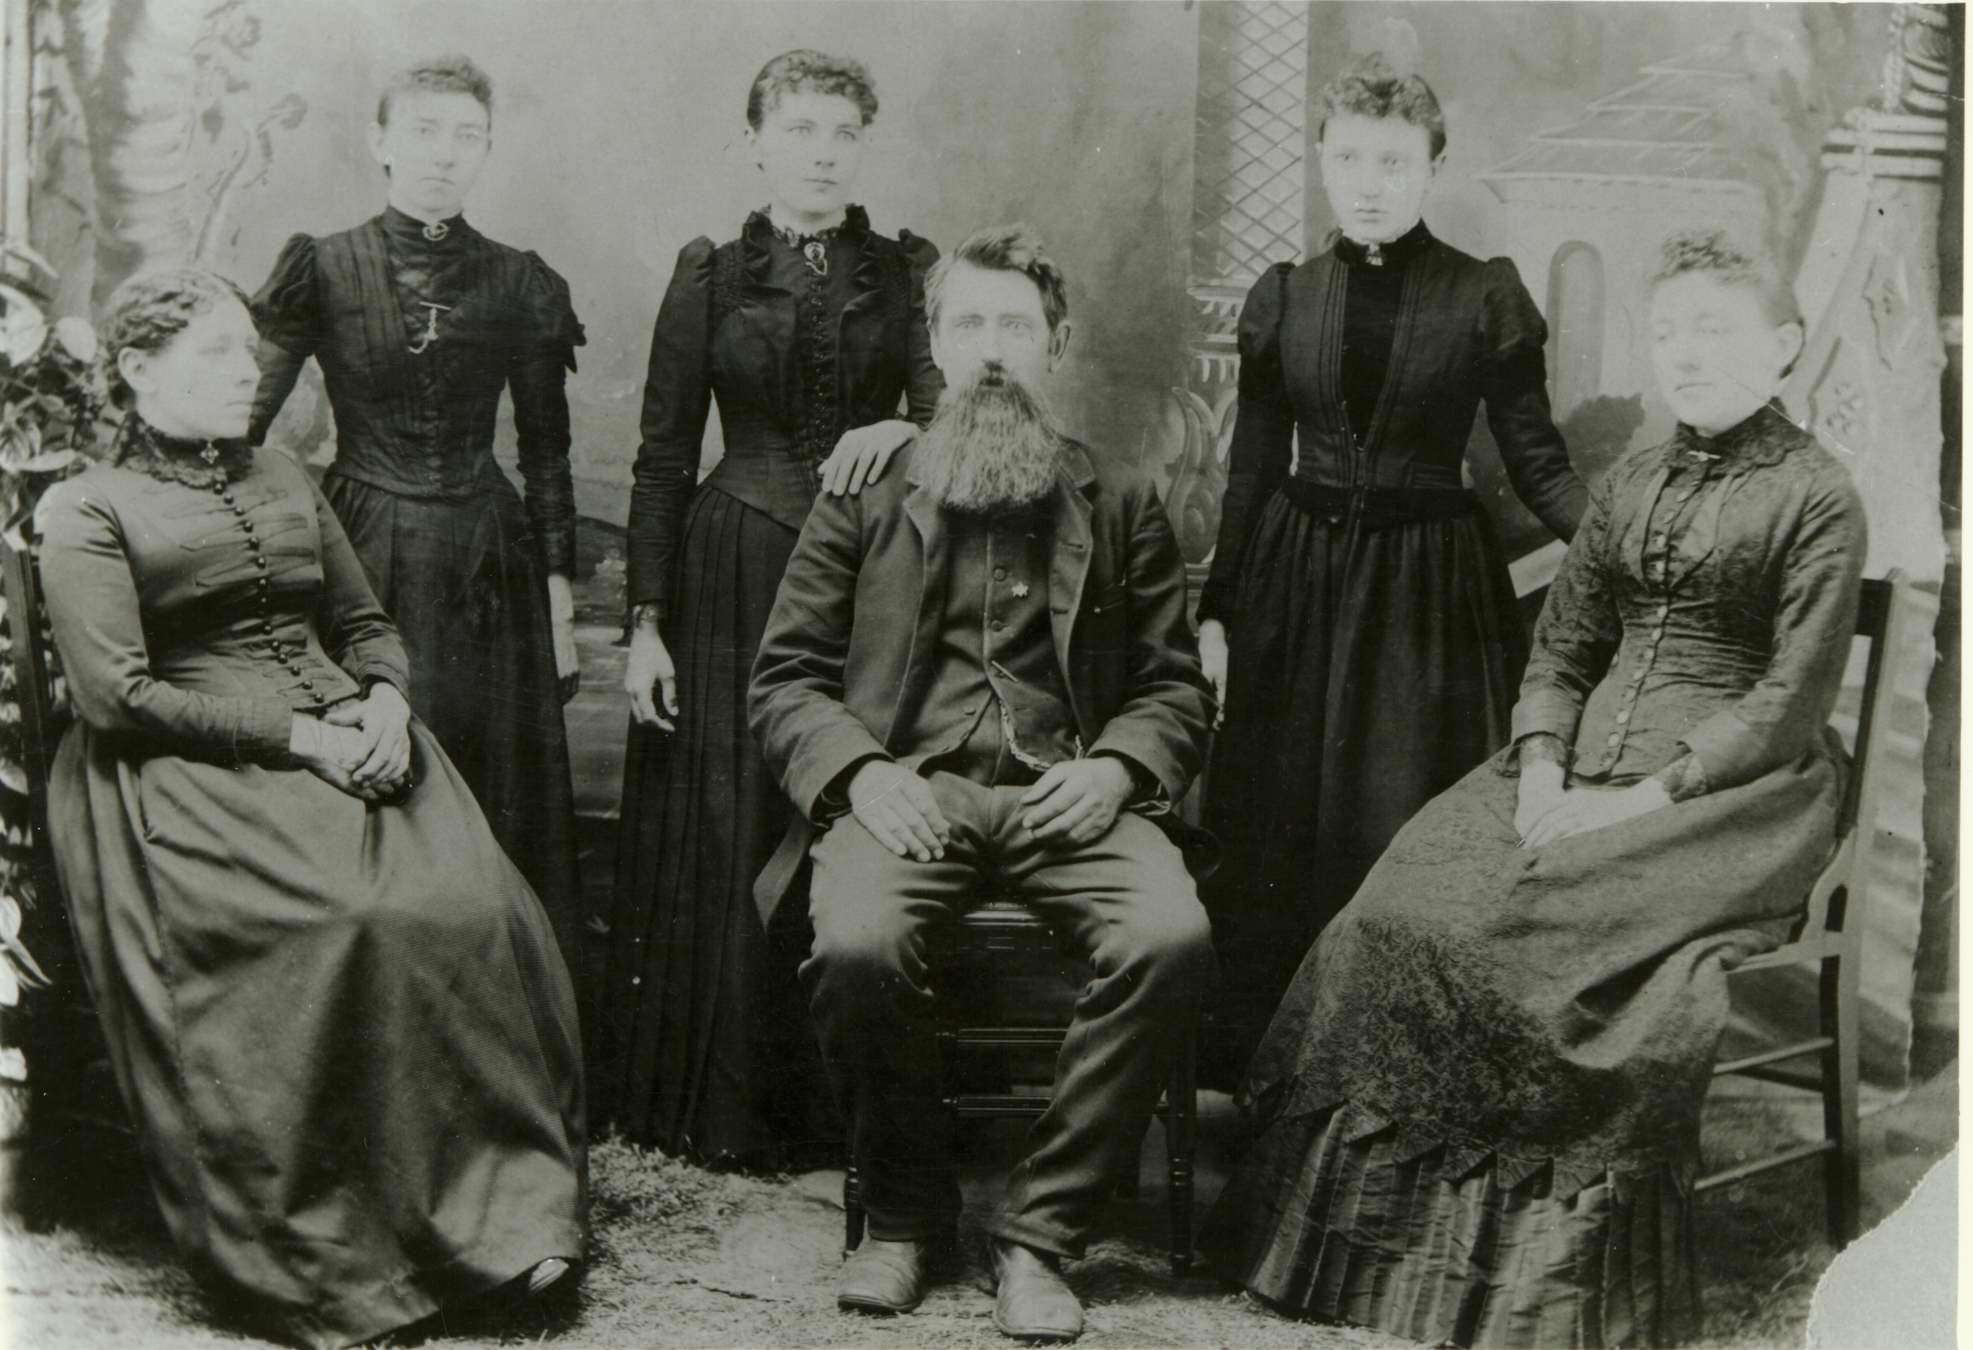 Ingalls Family, including Carrie Ingalls